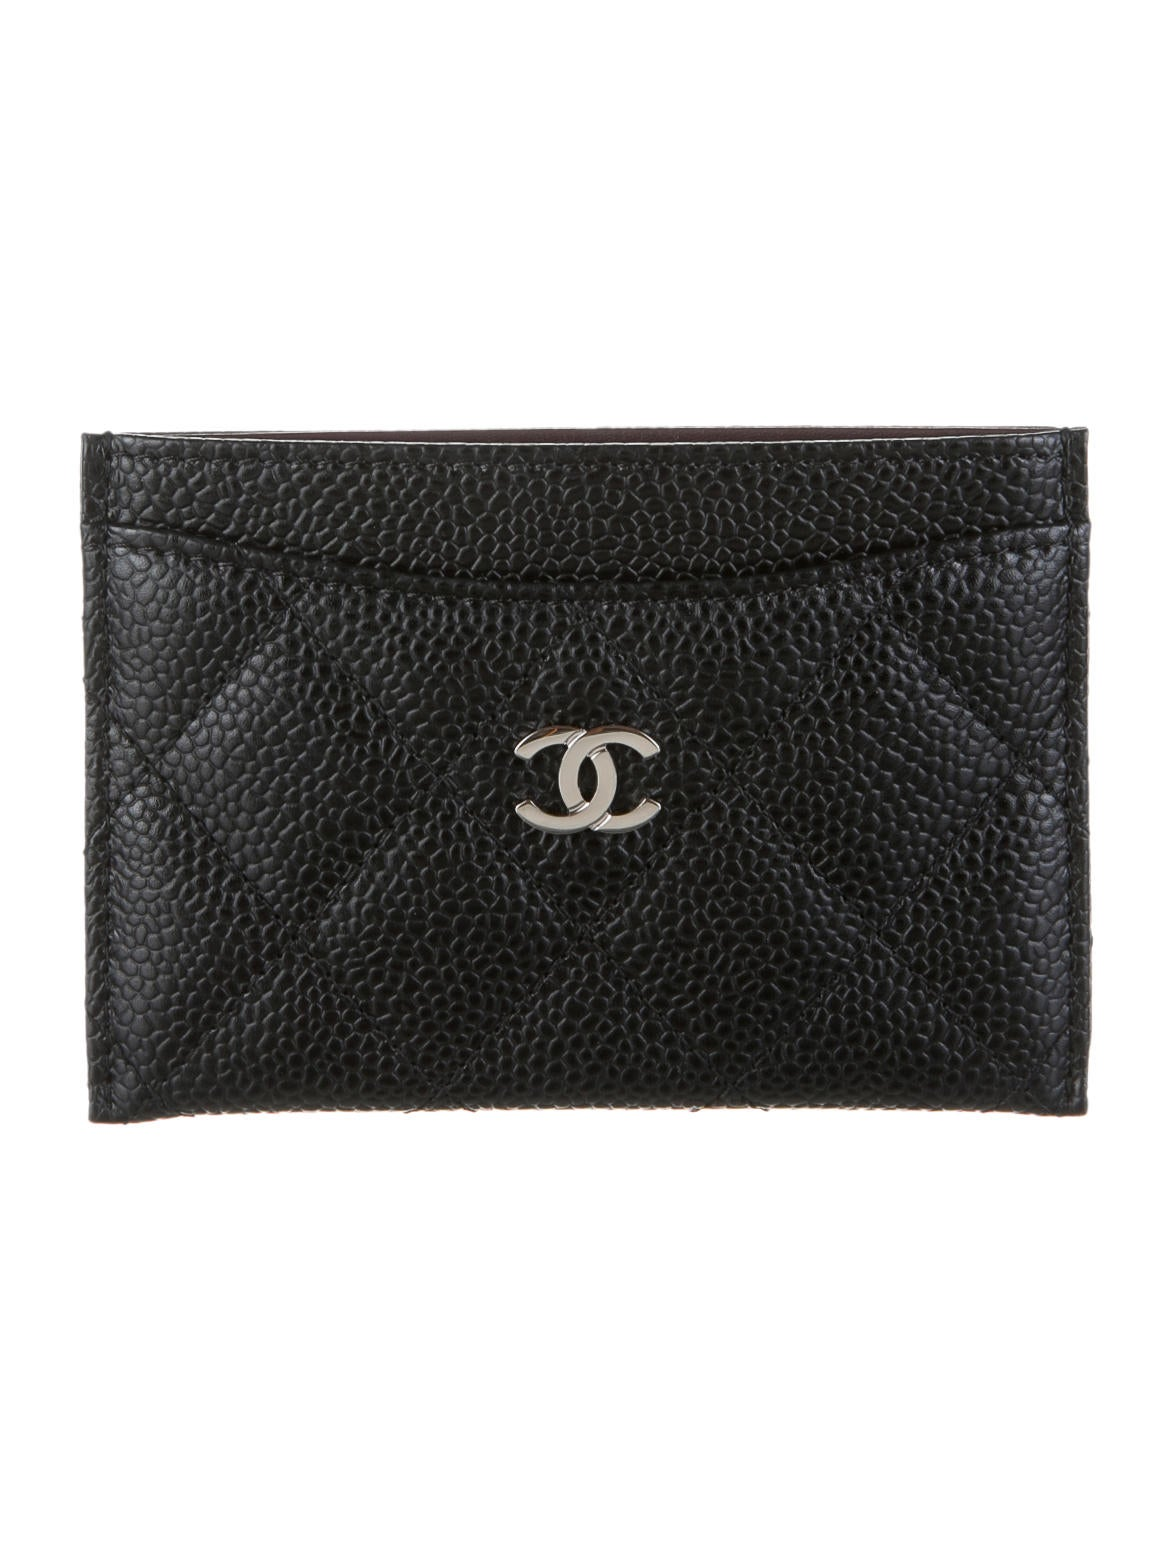 ea74303b2c68 Chanel Card Holder - Accessories - CHA42488 | The RealReal